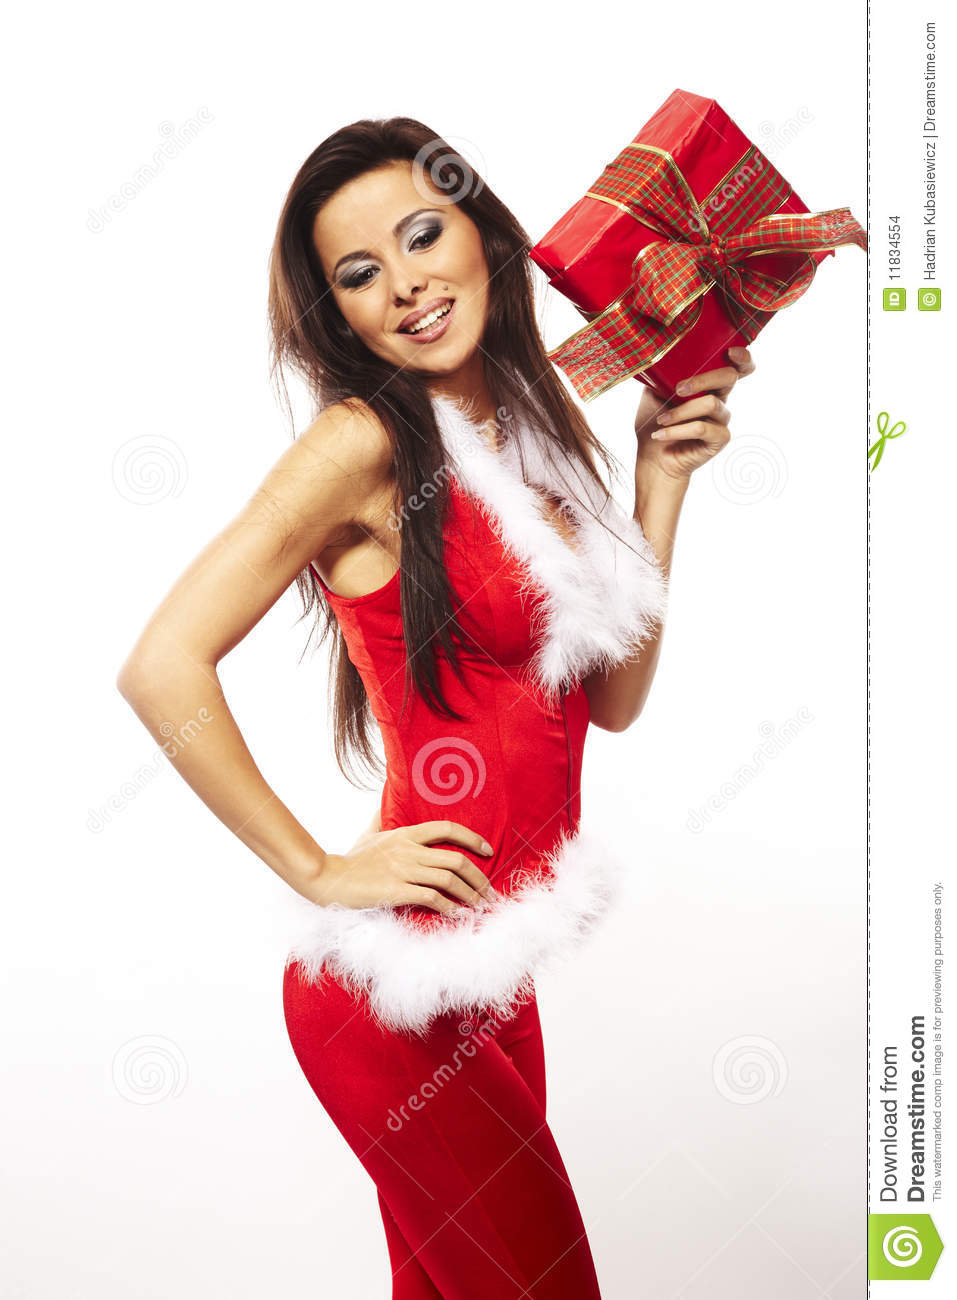 Santa claus and holding red gift on white